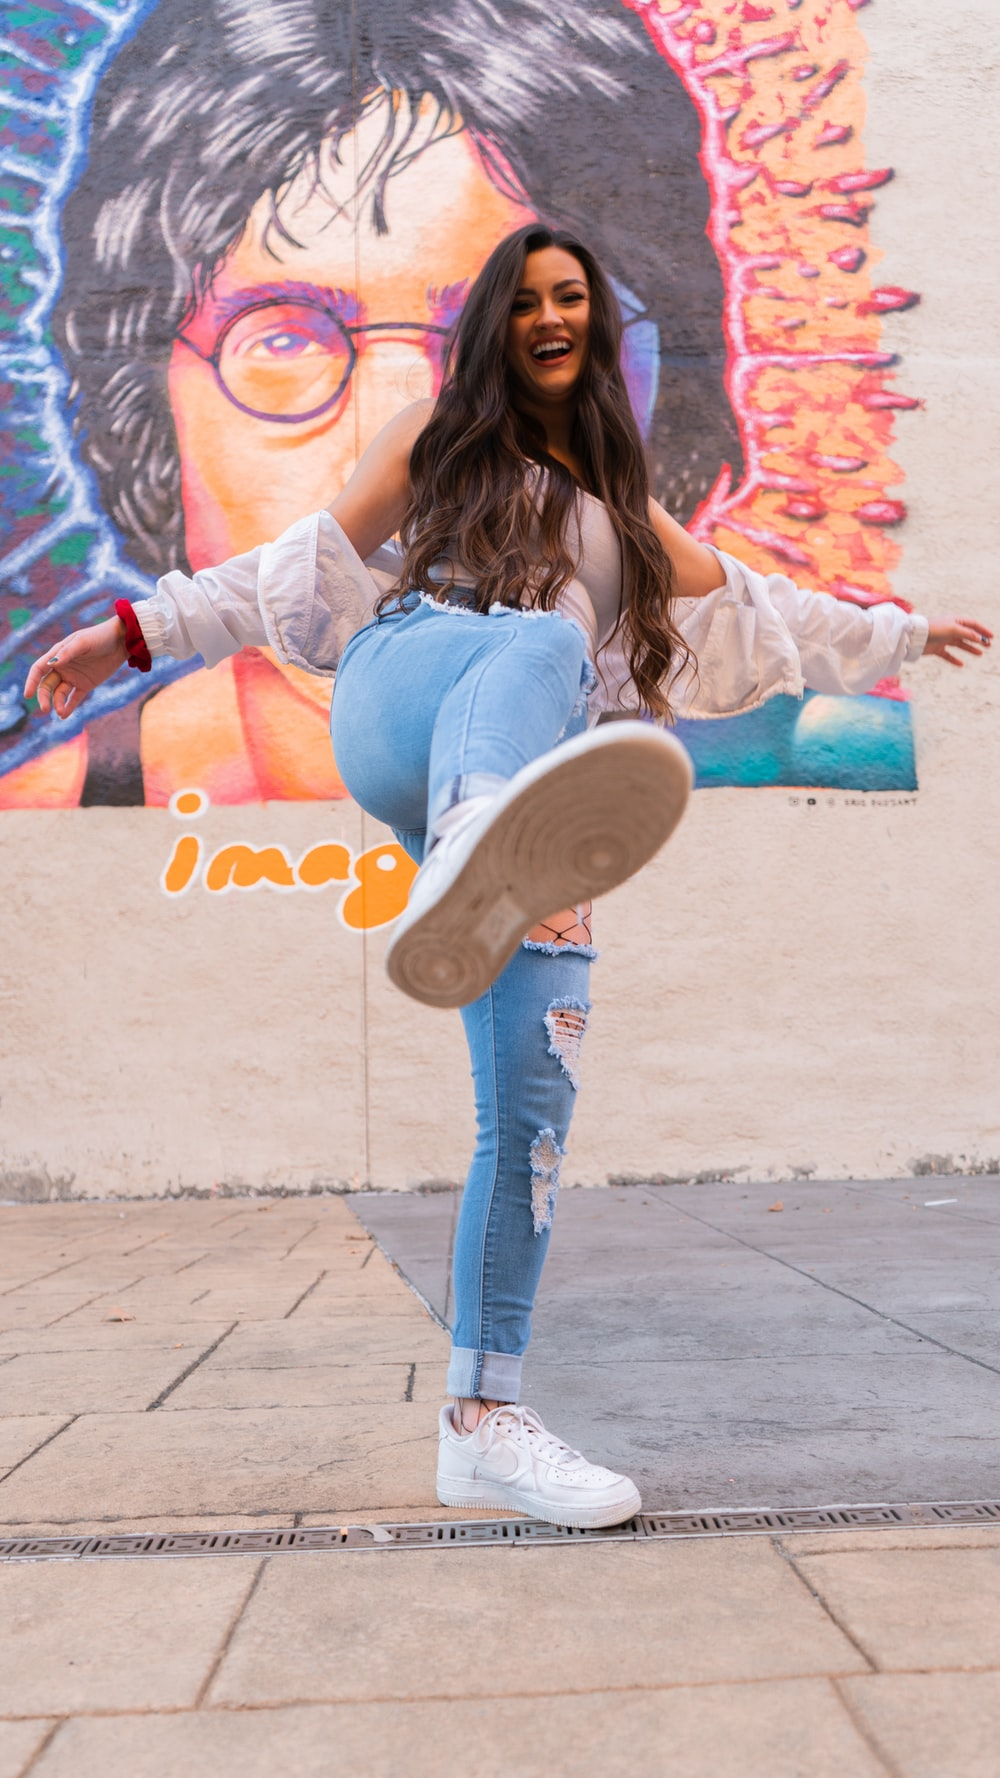 woman in blue denim jeans and gray shirt sitting on concrete wall during daytime